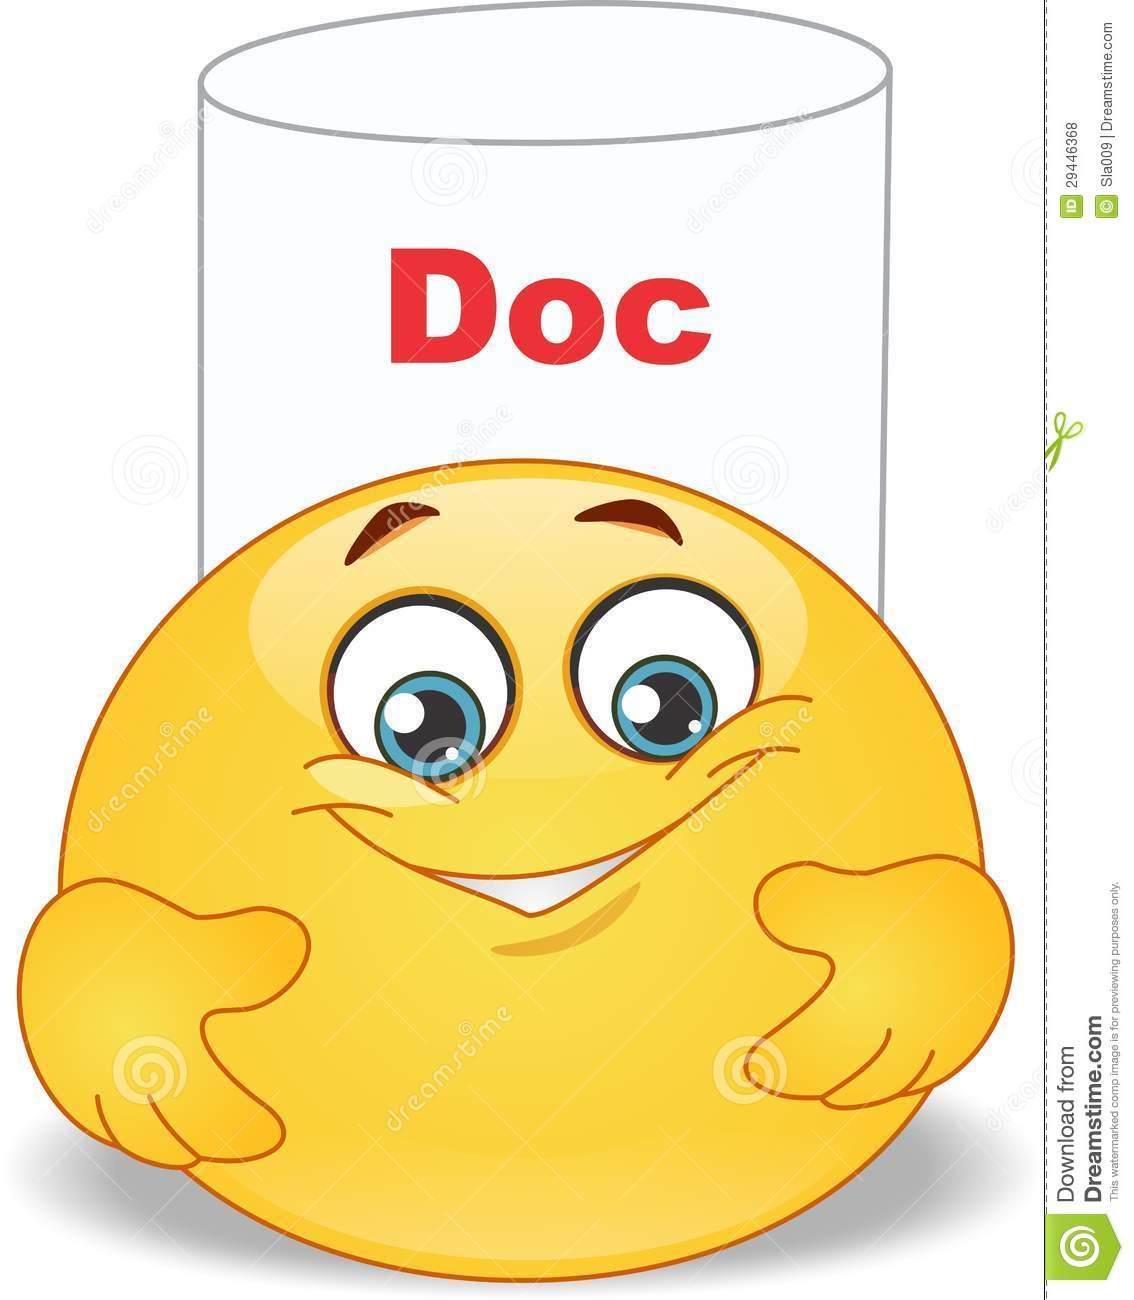 doctor emoticon royalty free stock photos image 29446368 free nurse clipart of stethoscope free nurse clip art